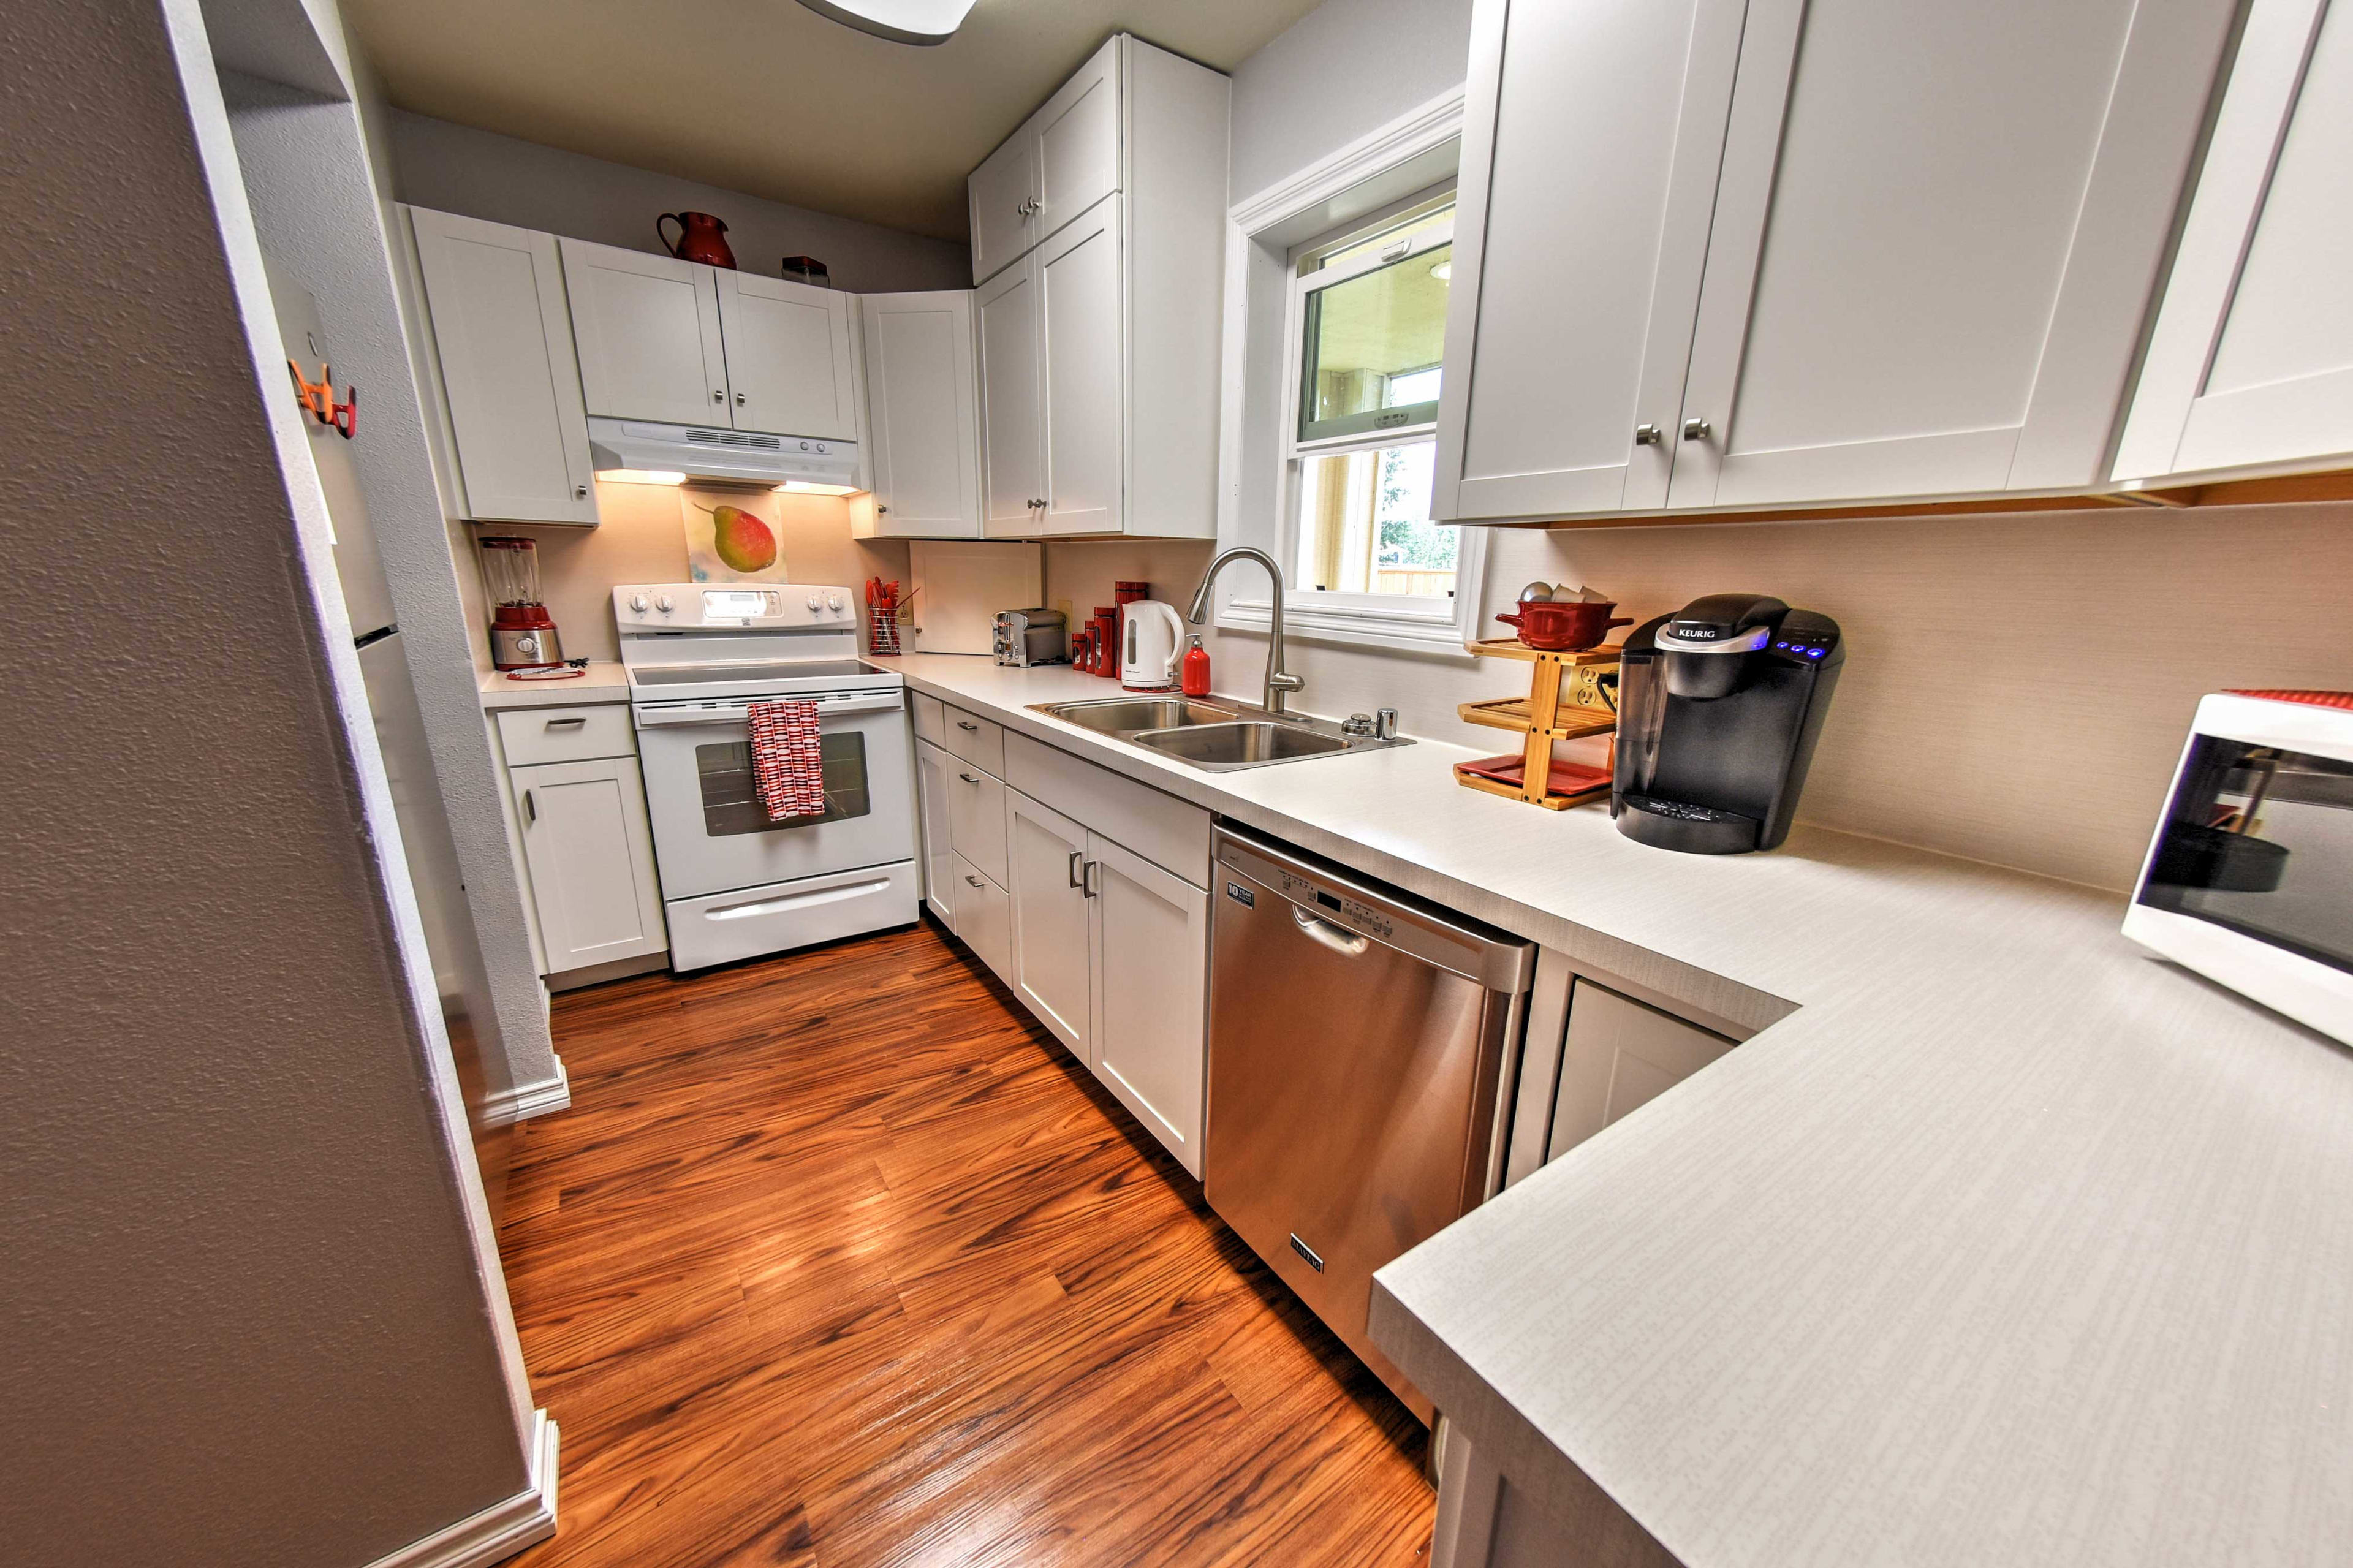 A fully equipped kitchen allows you to prepare all your favorite recipes.